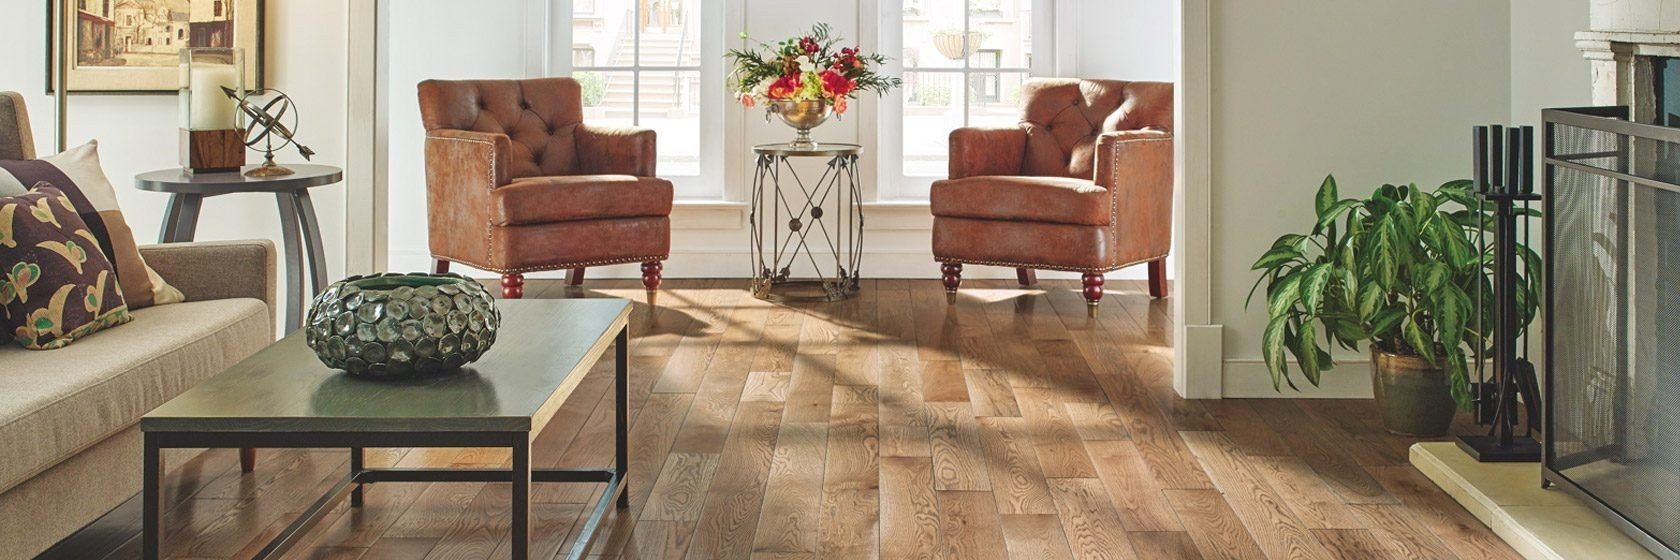 engineered hardwood flooring in bathrooms of 19 best of hardwood floor tile stock dizpos com inside hardwood floor tile best of oak solid hardwood hay ground saktb39l4hgw is part of the pics